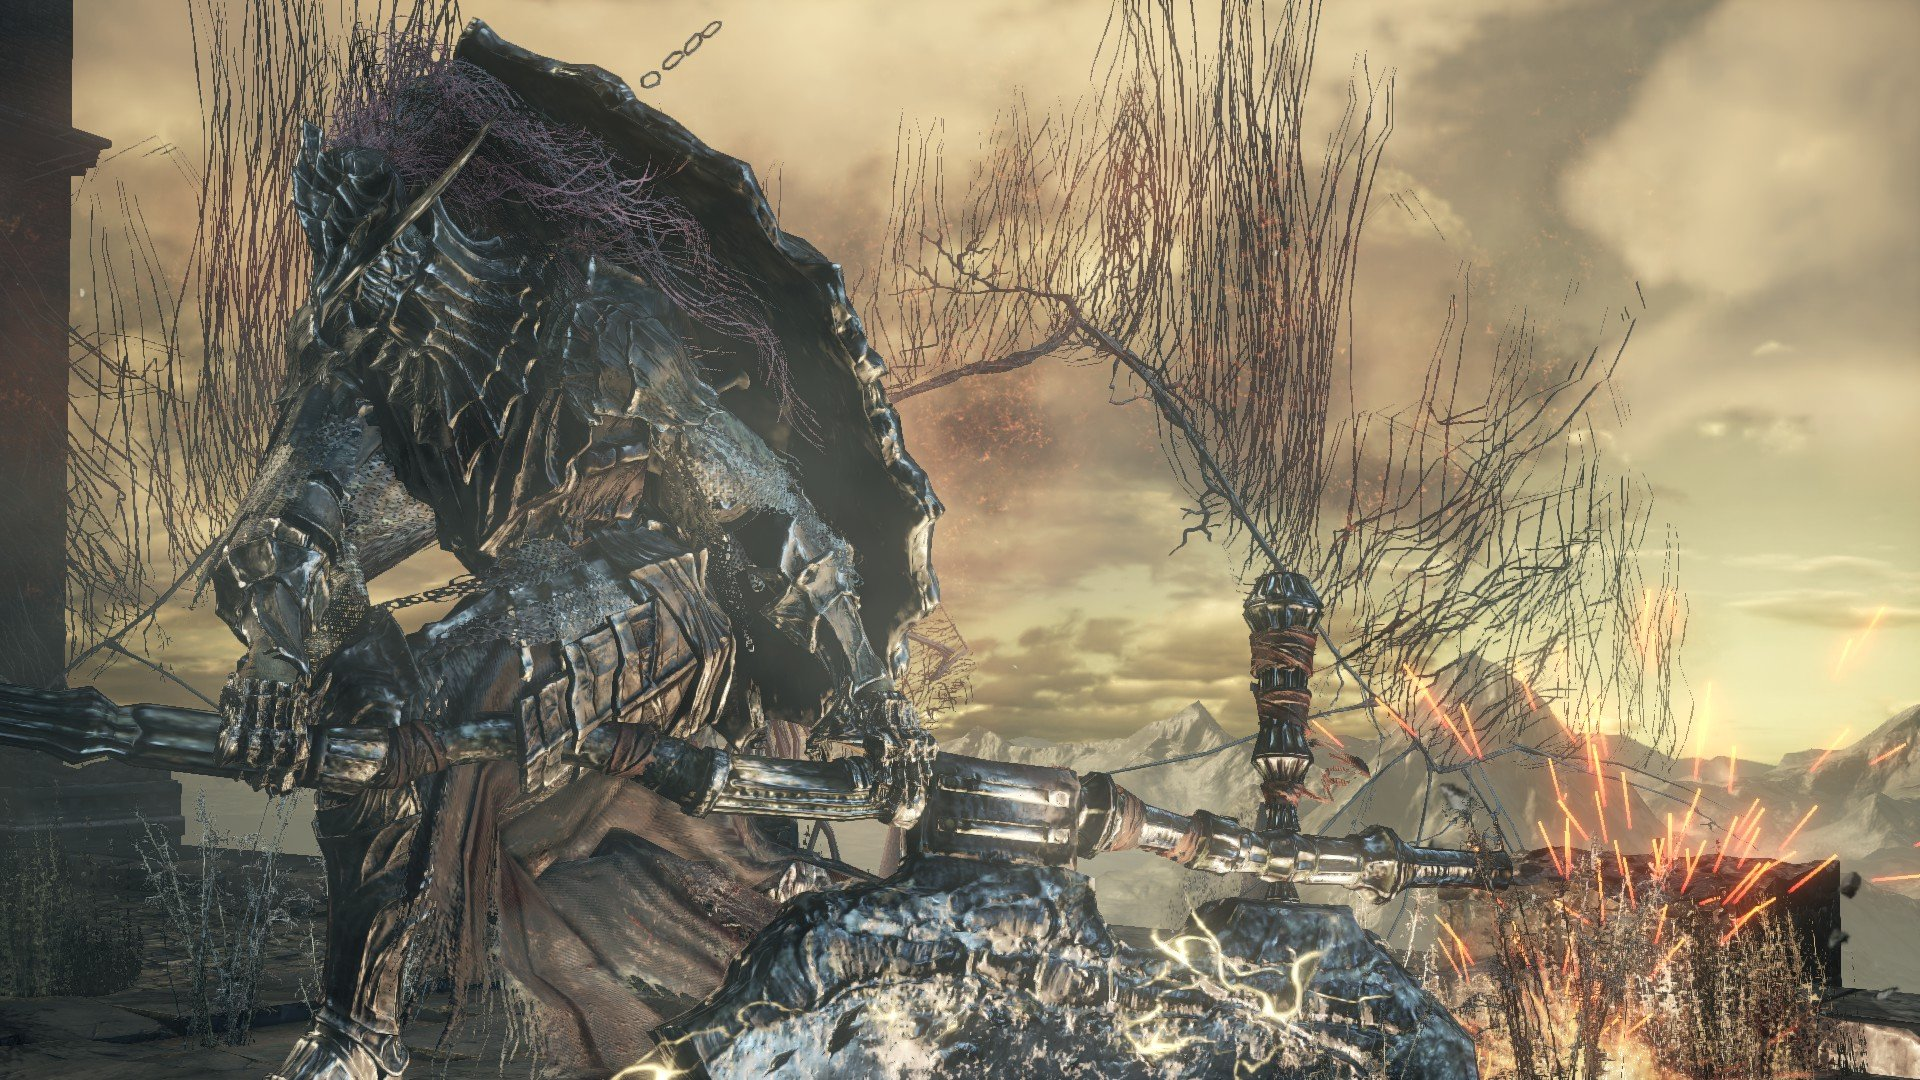 Dragonslayer Armour Dark Souls 3 Wiki Add a new set of armor and weapons (there are enchanted and normal version of the weapon and shield) based on norse. dragonslayer armour dark souls 3 wiki